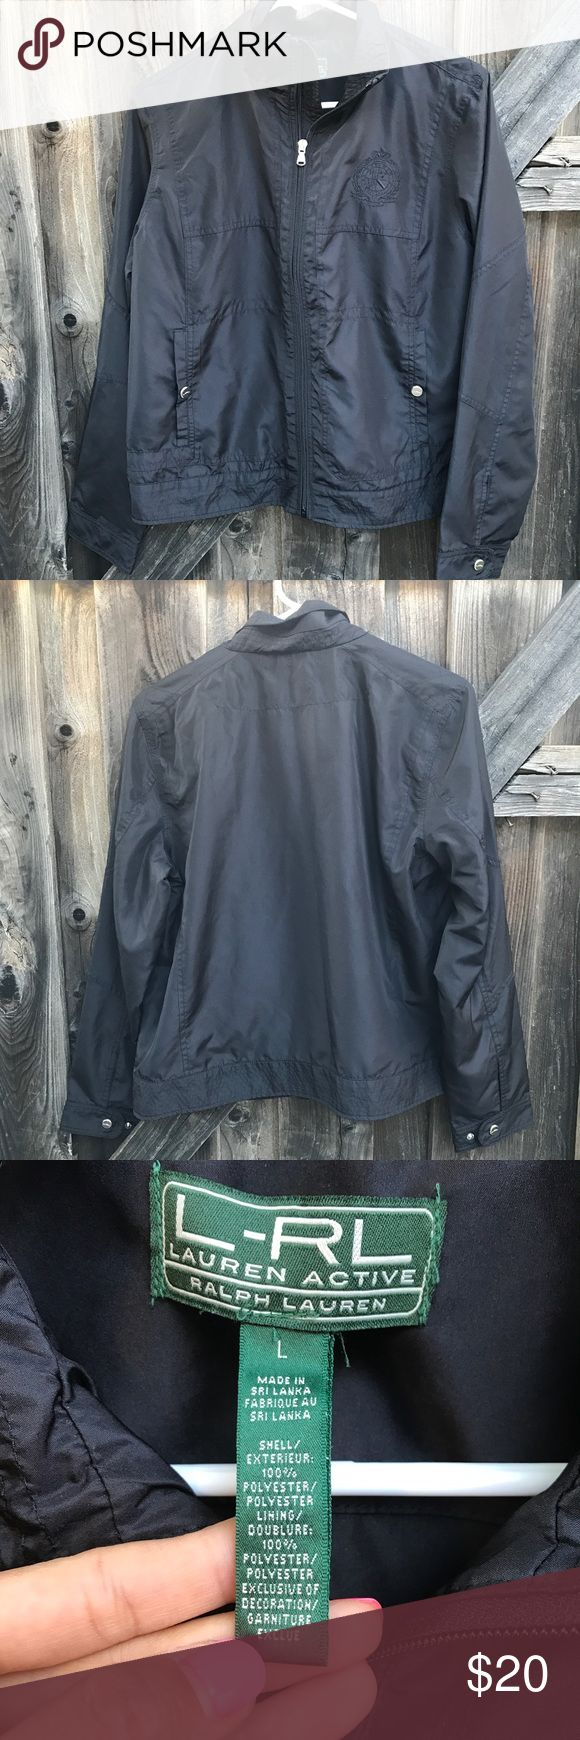 Ralph Lauren men's jacket Ralph Lauren active men's black light weight jacket Size large 100% Polyester  Length 23.2 Armpit to armpit 22 Shoulder to shoulder 16.5 Arm length from shoulder 29 M18 like new no stains or rips or fading m18 Lauren Ralph Lauren Jackets & Coats Lightweight & Shirt Jackets